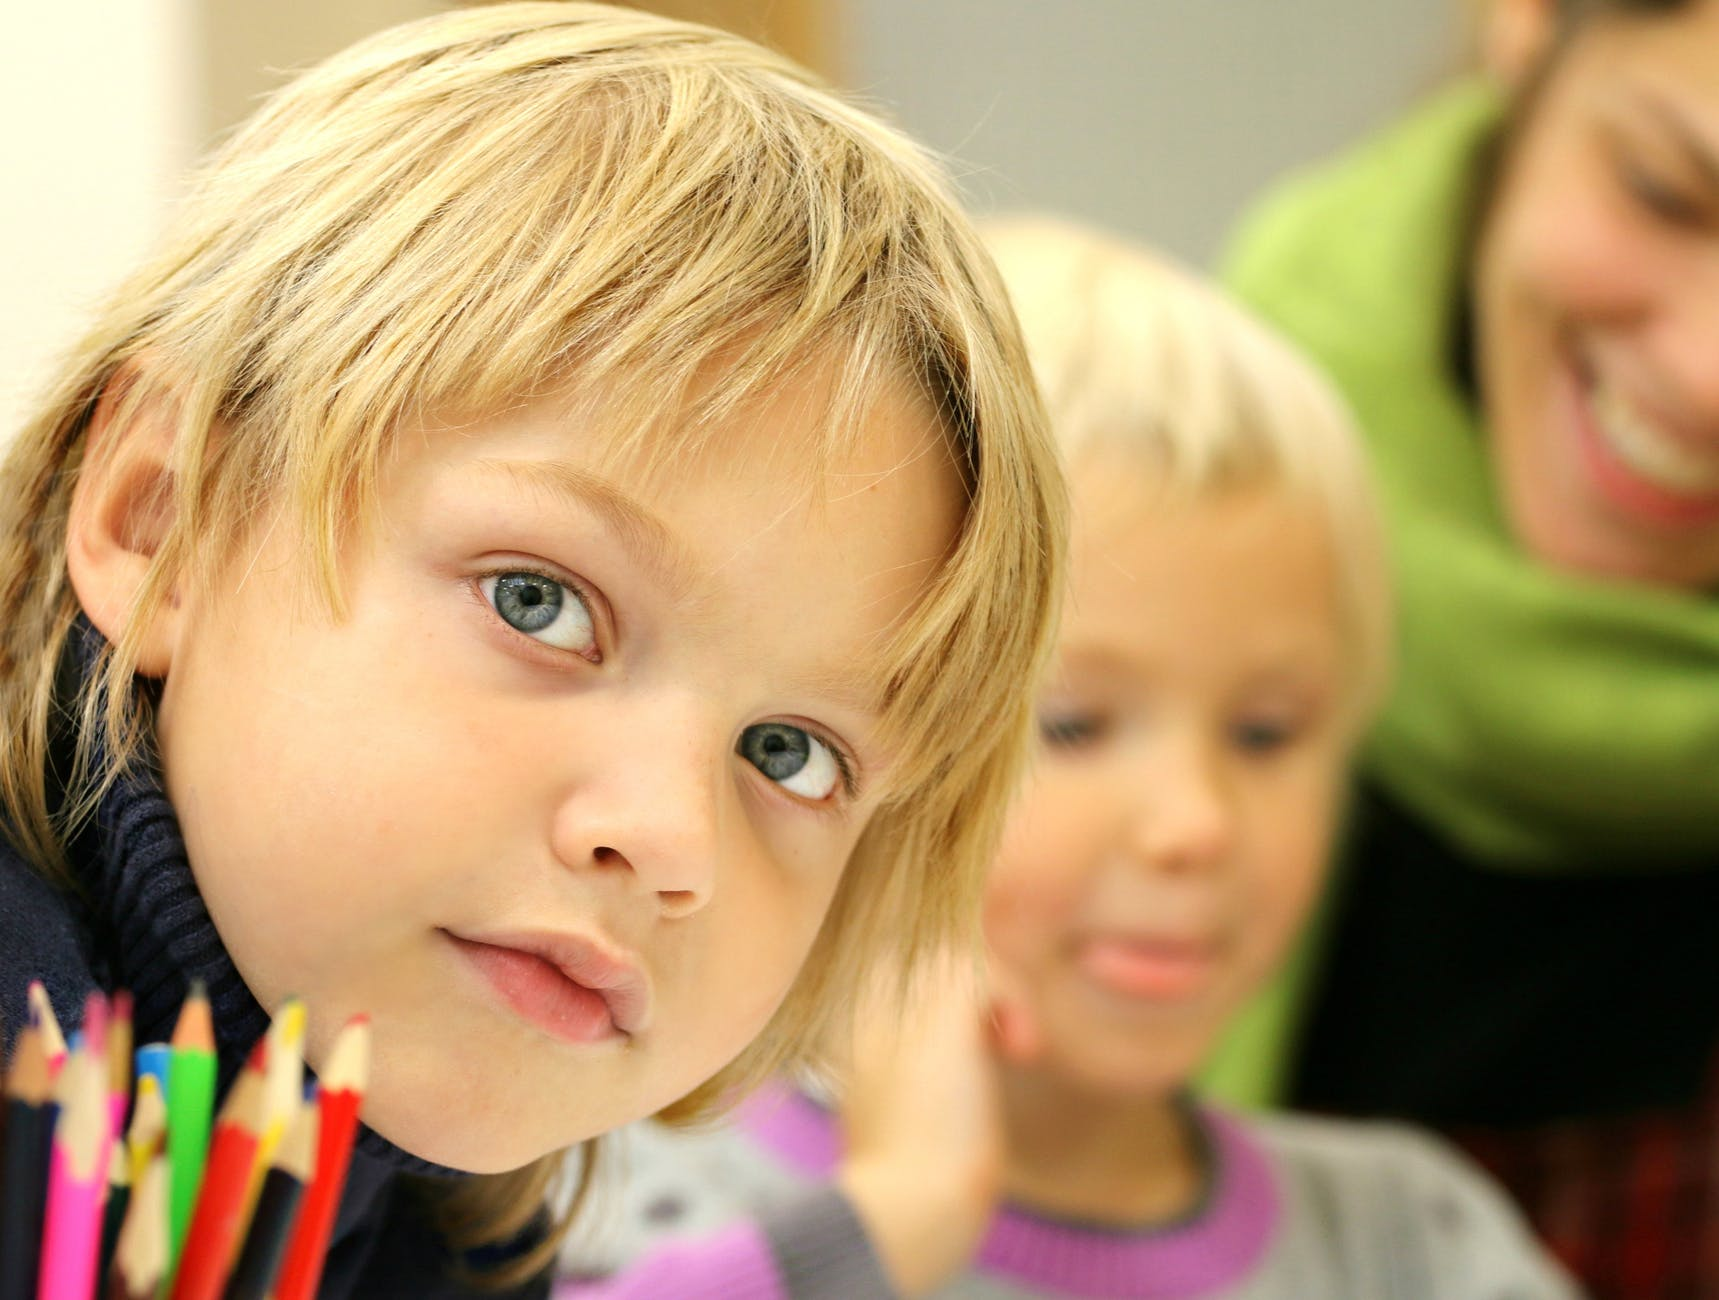 boy up close with colored pencils in front of him during home school class